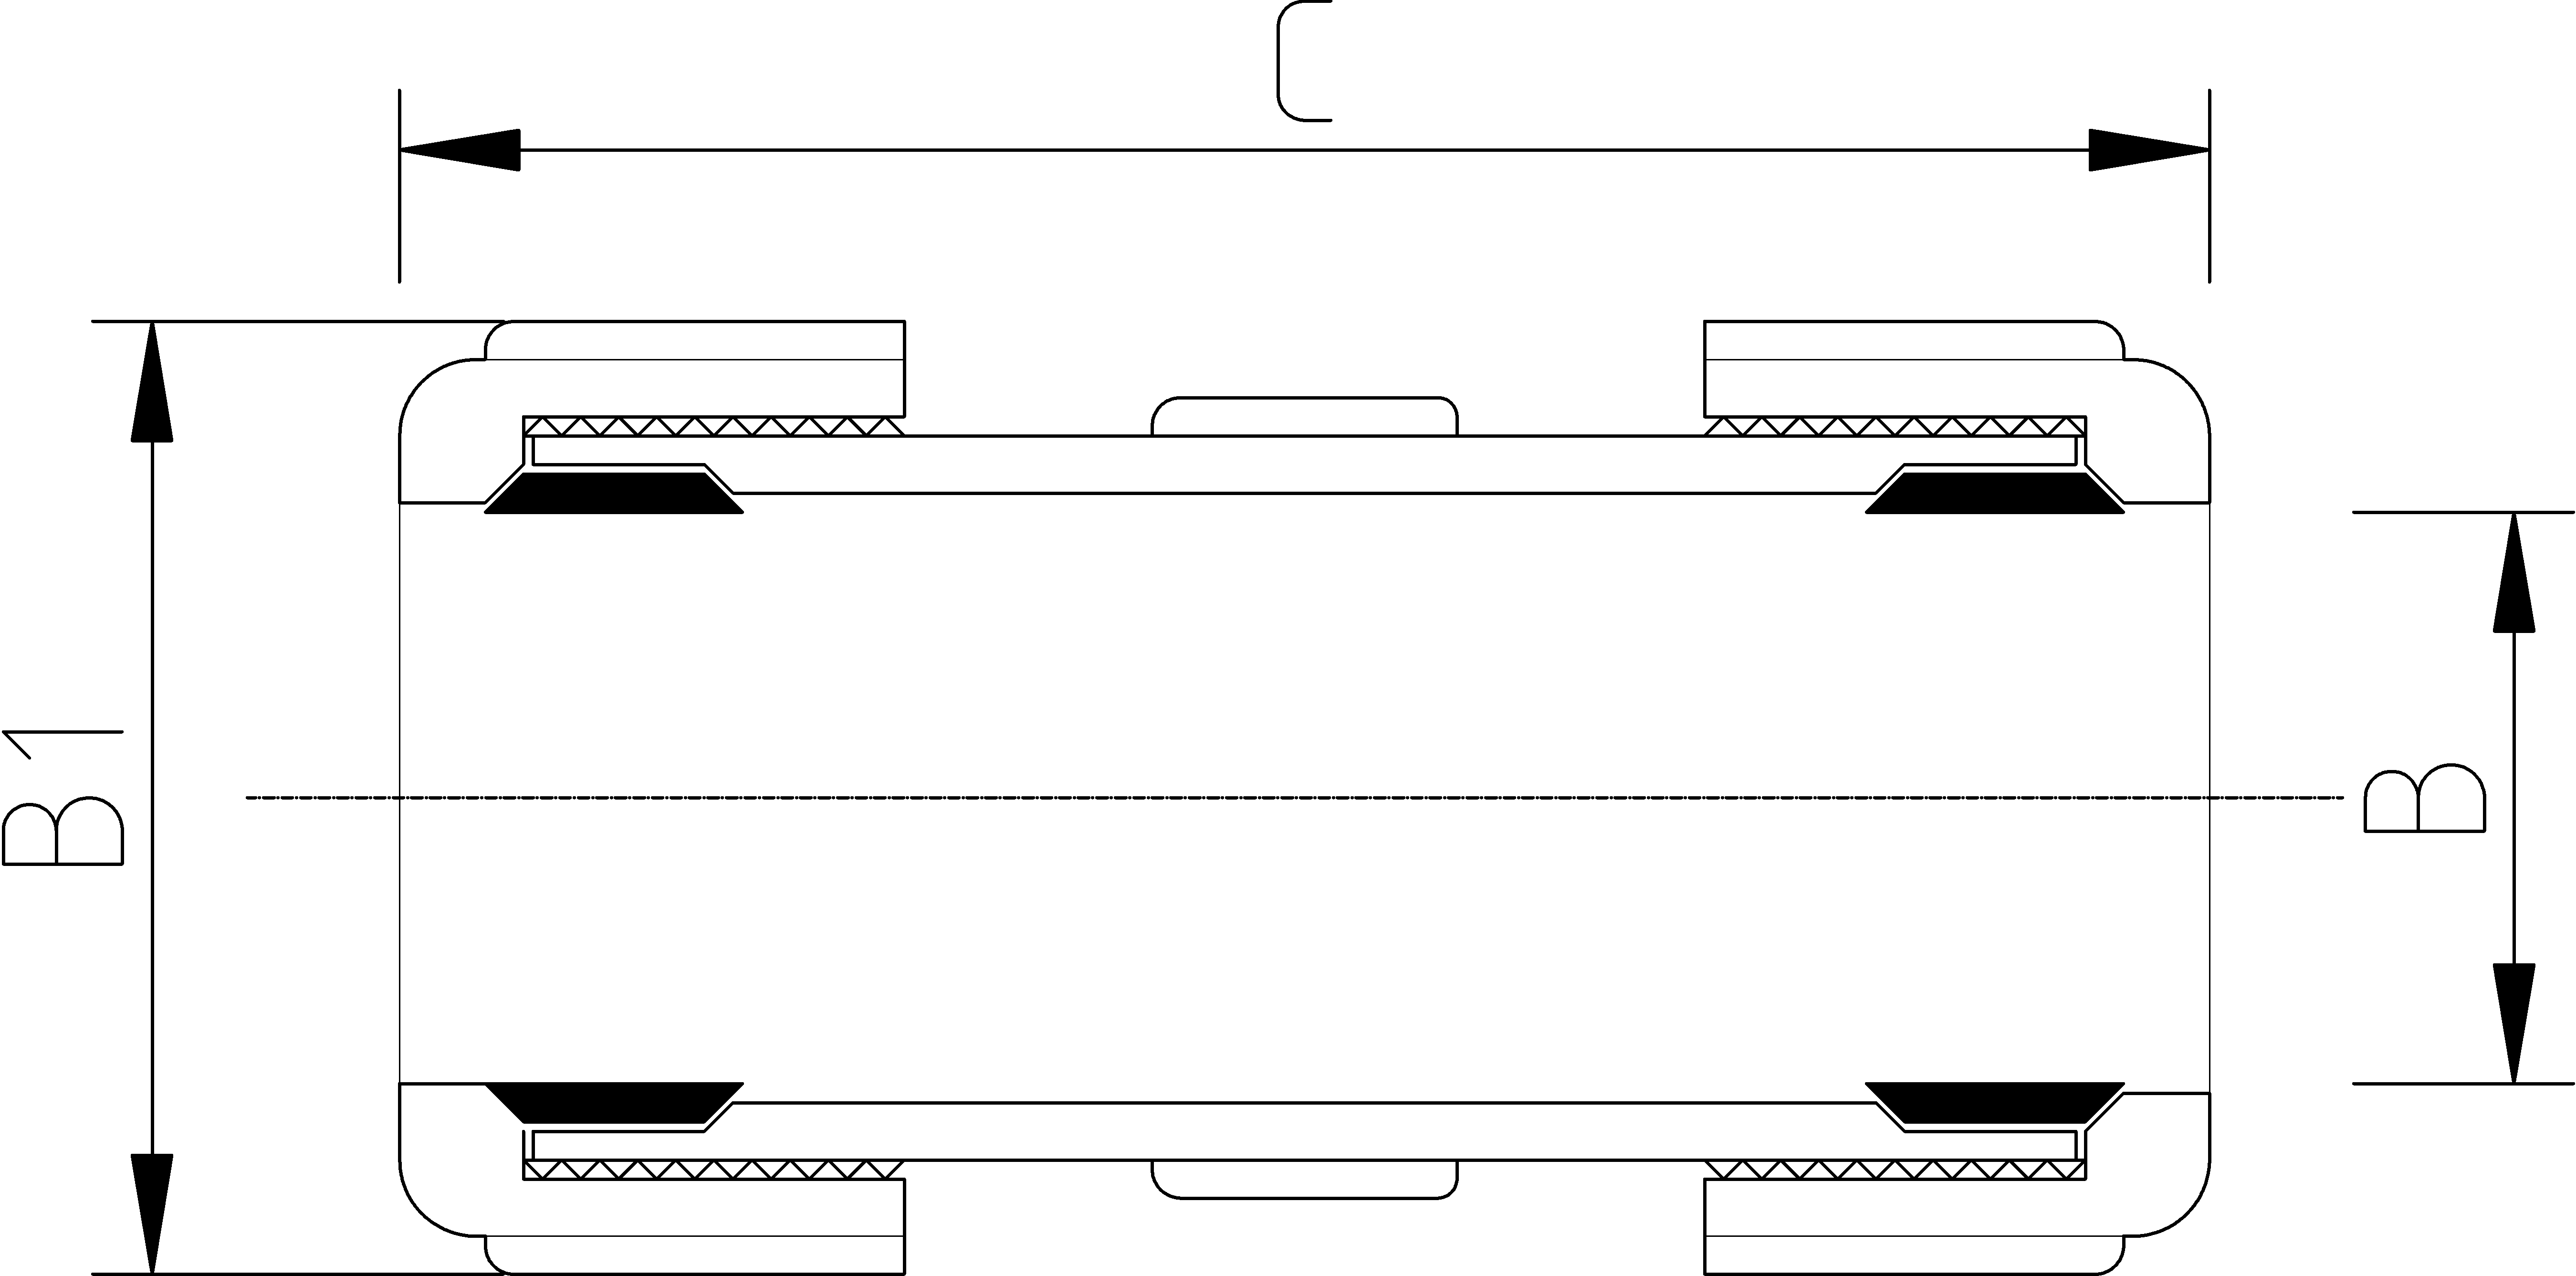 4 Inch Compression Repair Coupler Dimensions Drawing